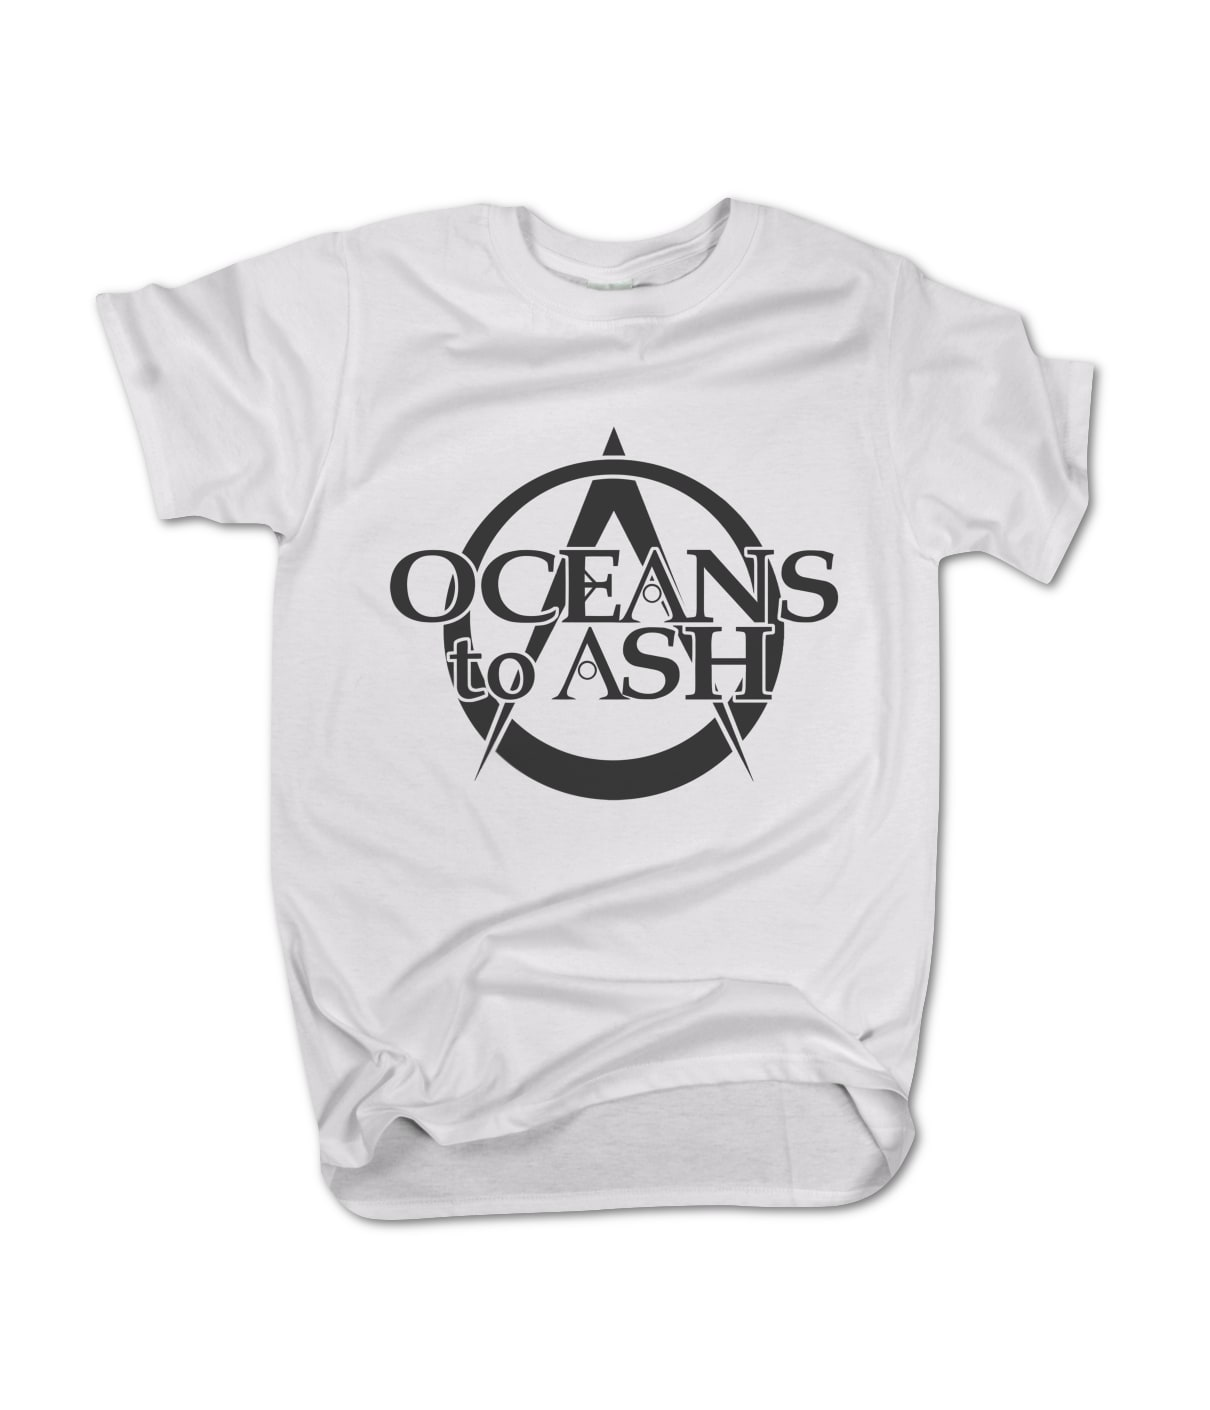 Oceans to ash oceans to ash logo   white 1525205526